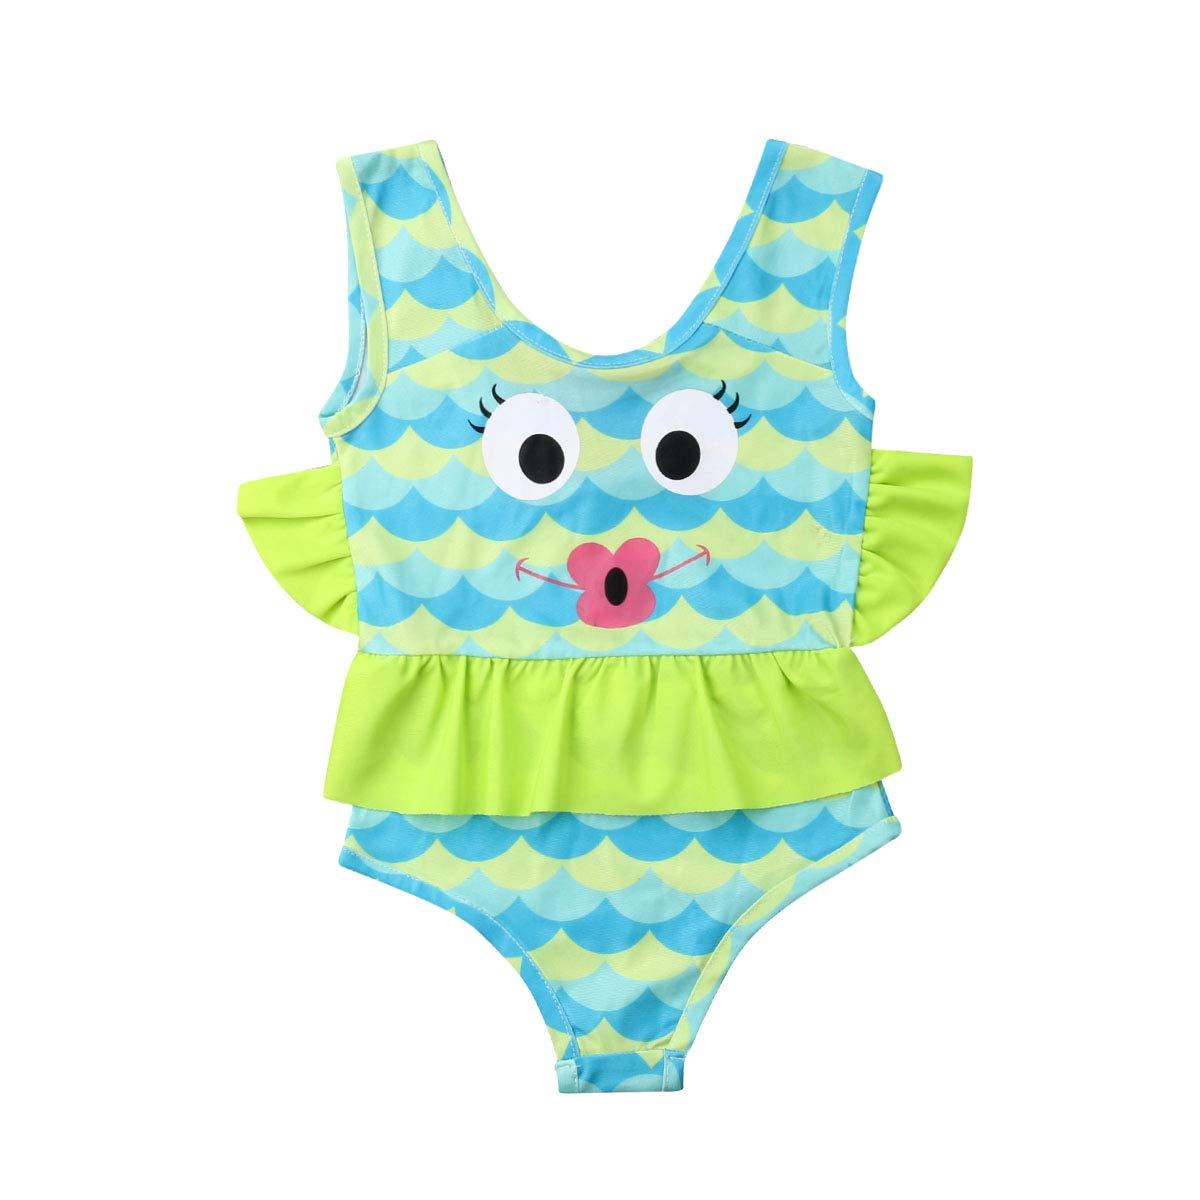 ff8e908c2aa3e Sejardin Baby Girls One Piece Swimsuits Cute Fish Scale Printed Bathing  Suit Ruffle Beach Wear Light Blue: Amazon.ca: Clothing & Accessories